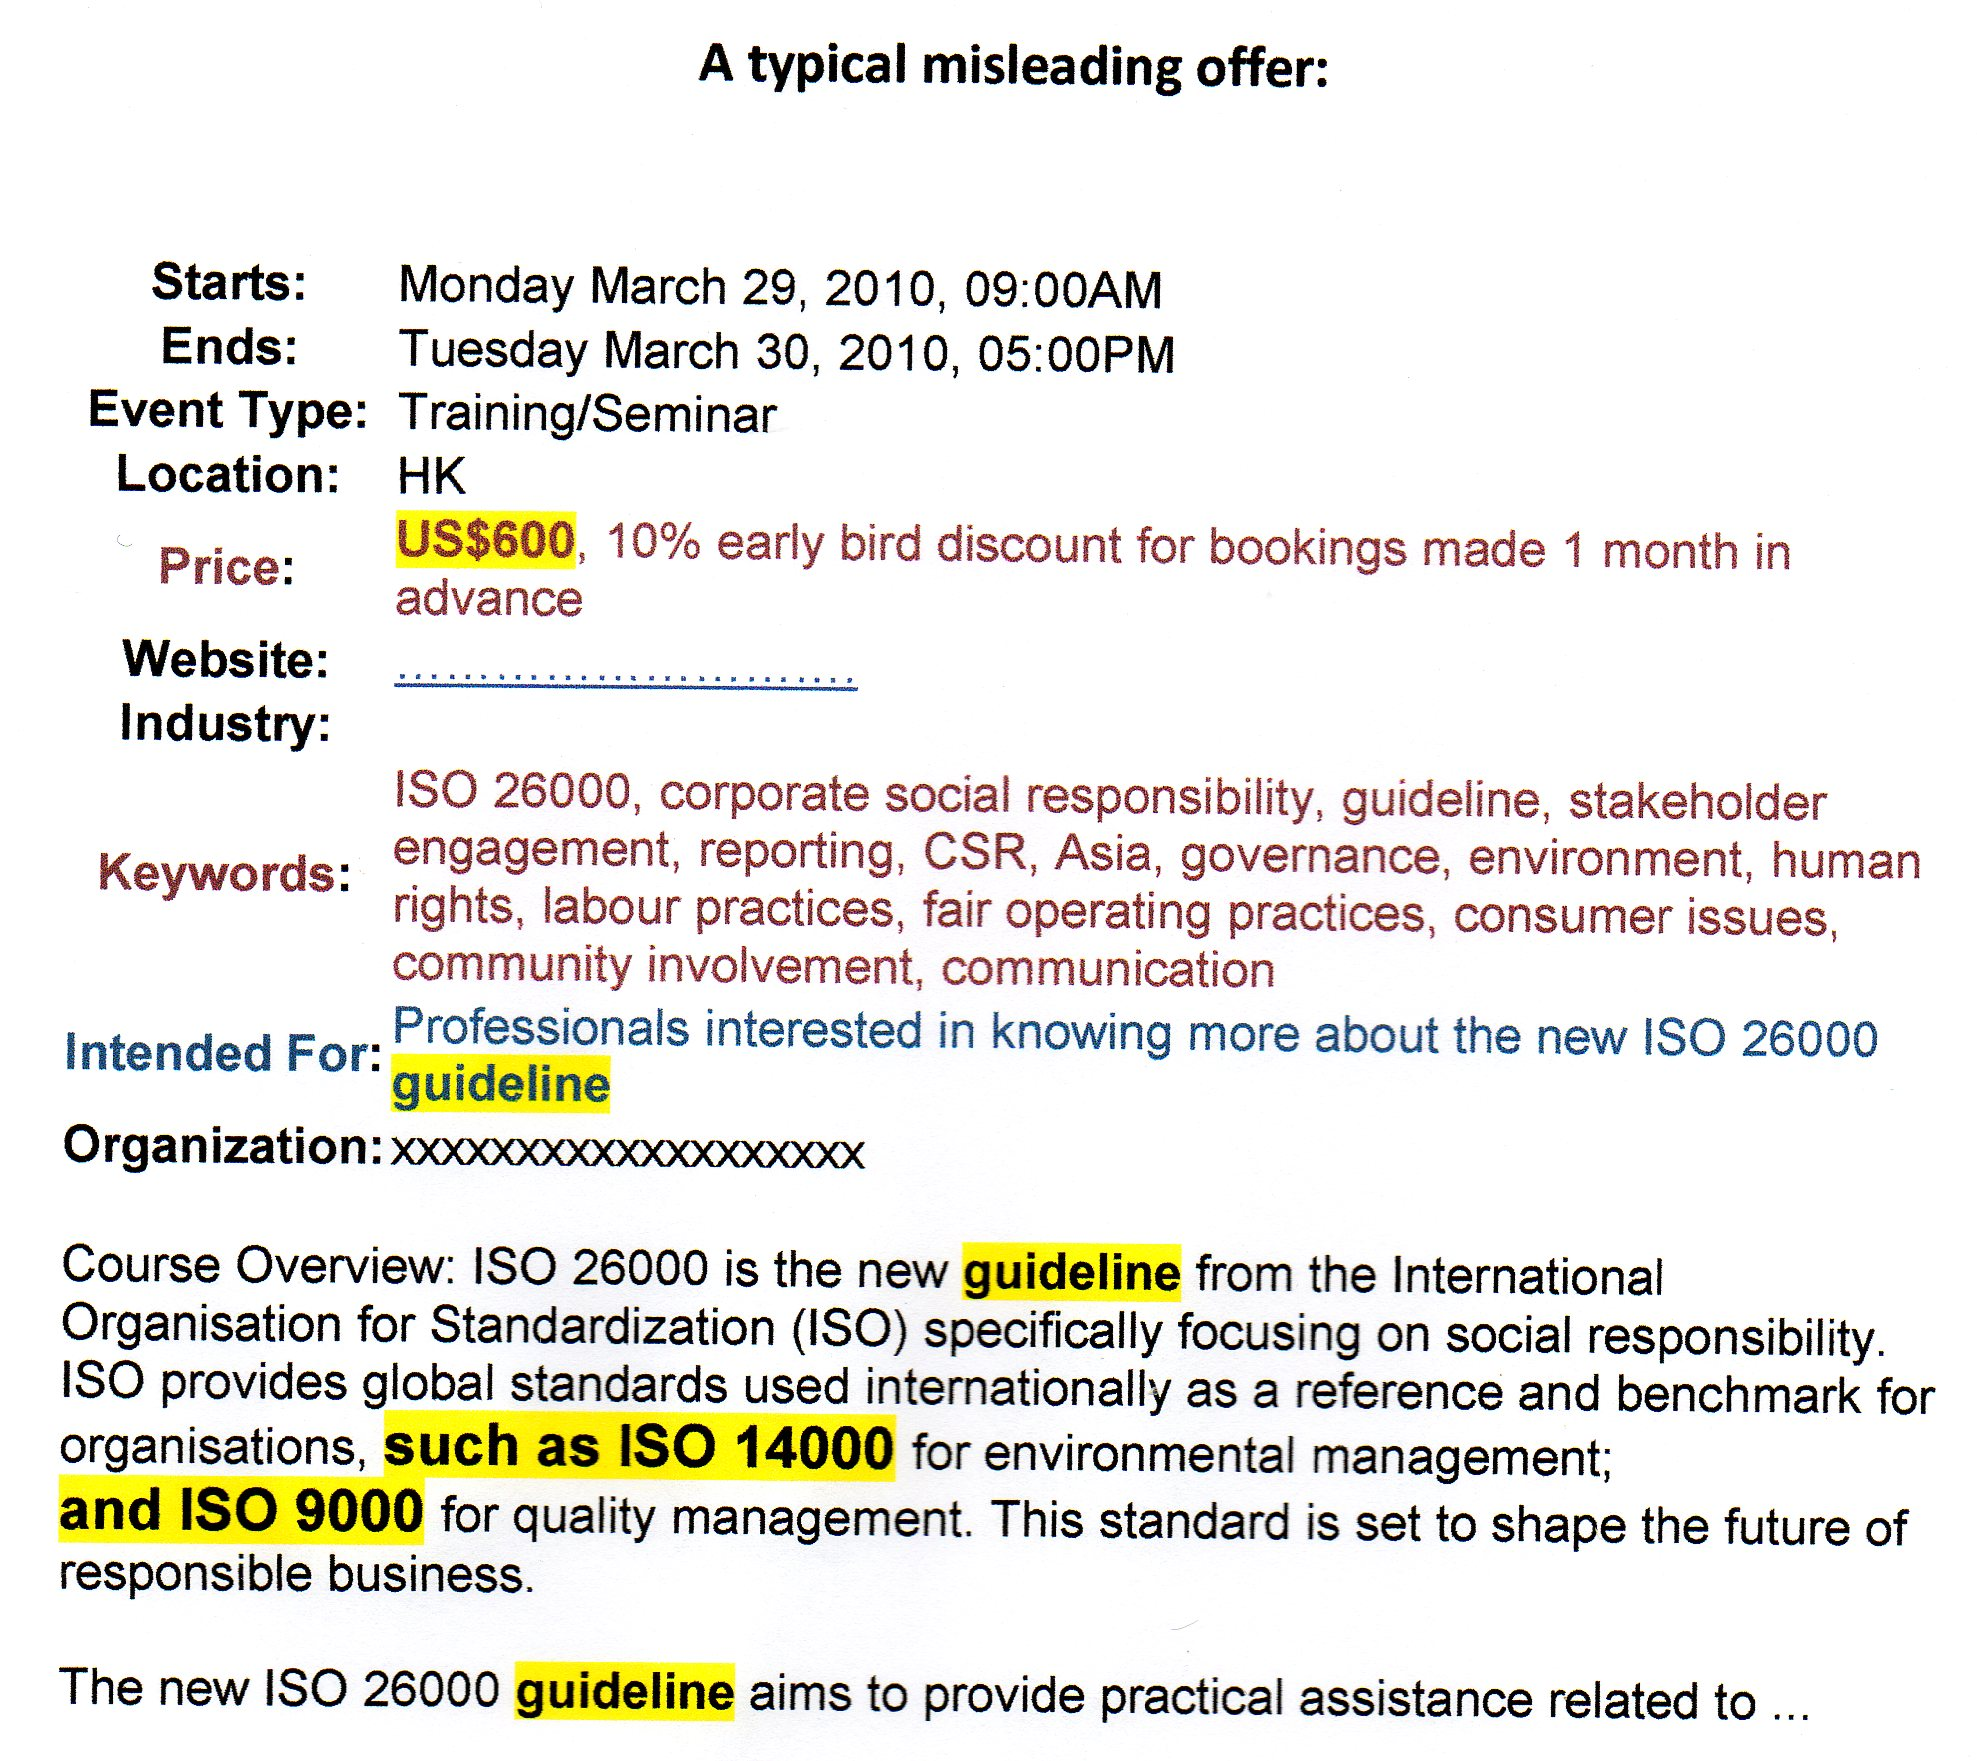 csr asia misleading text